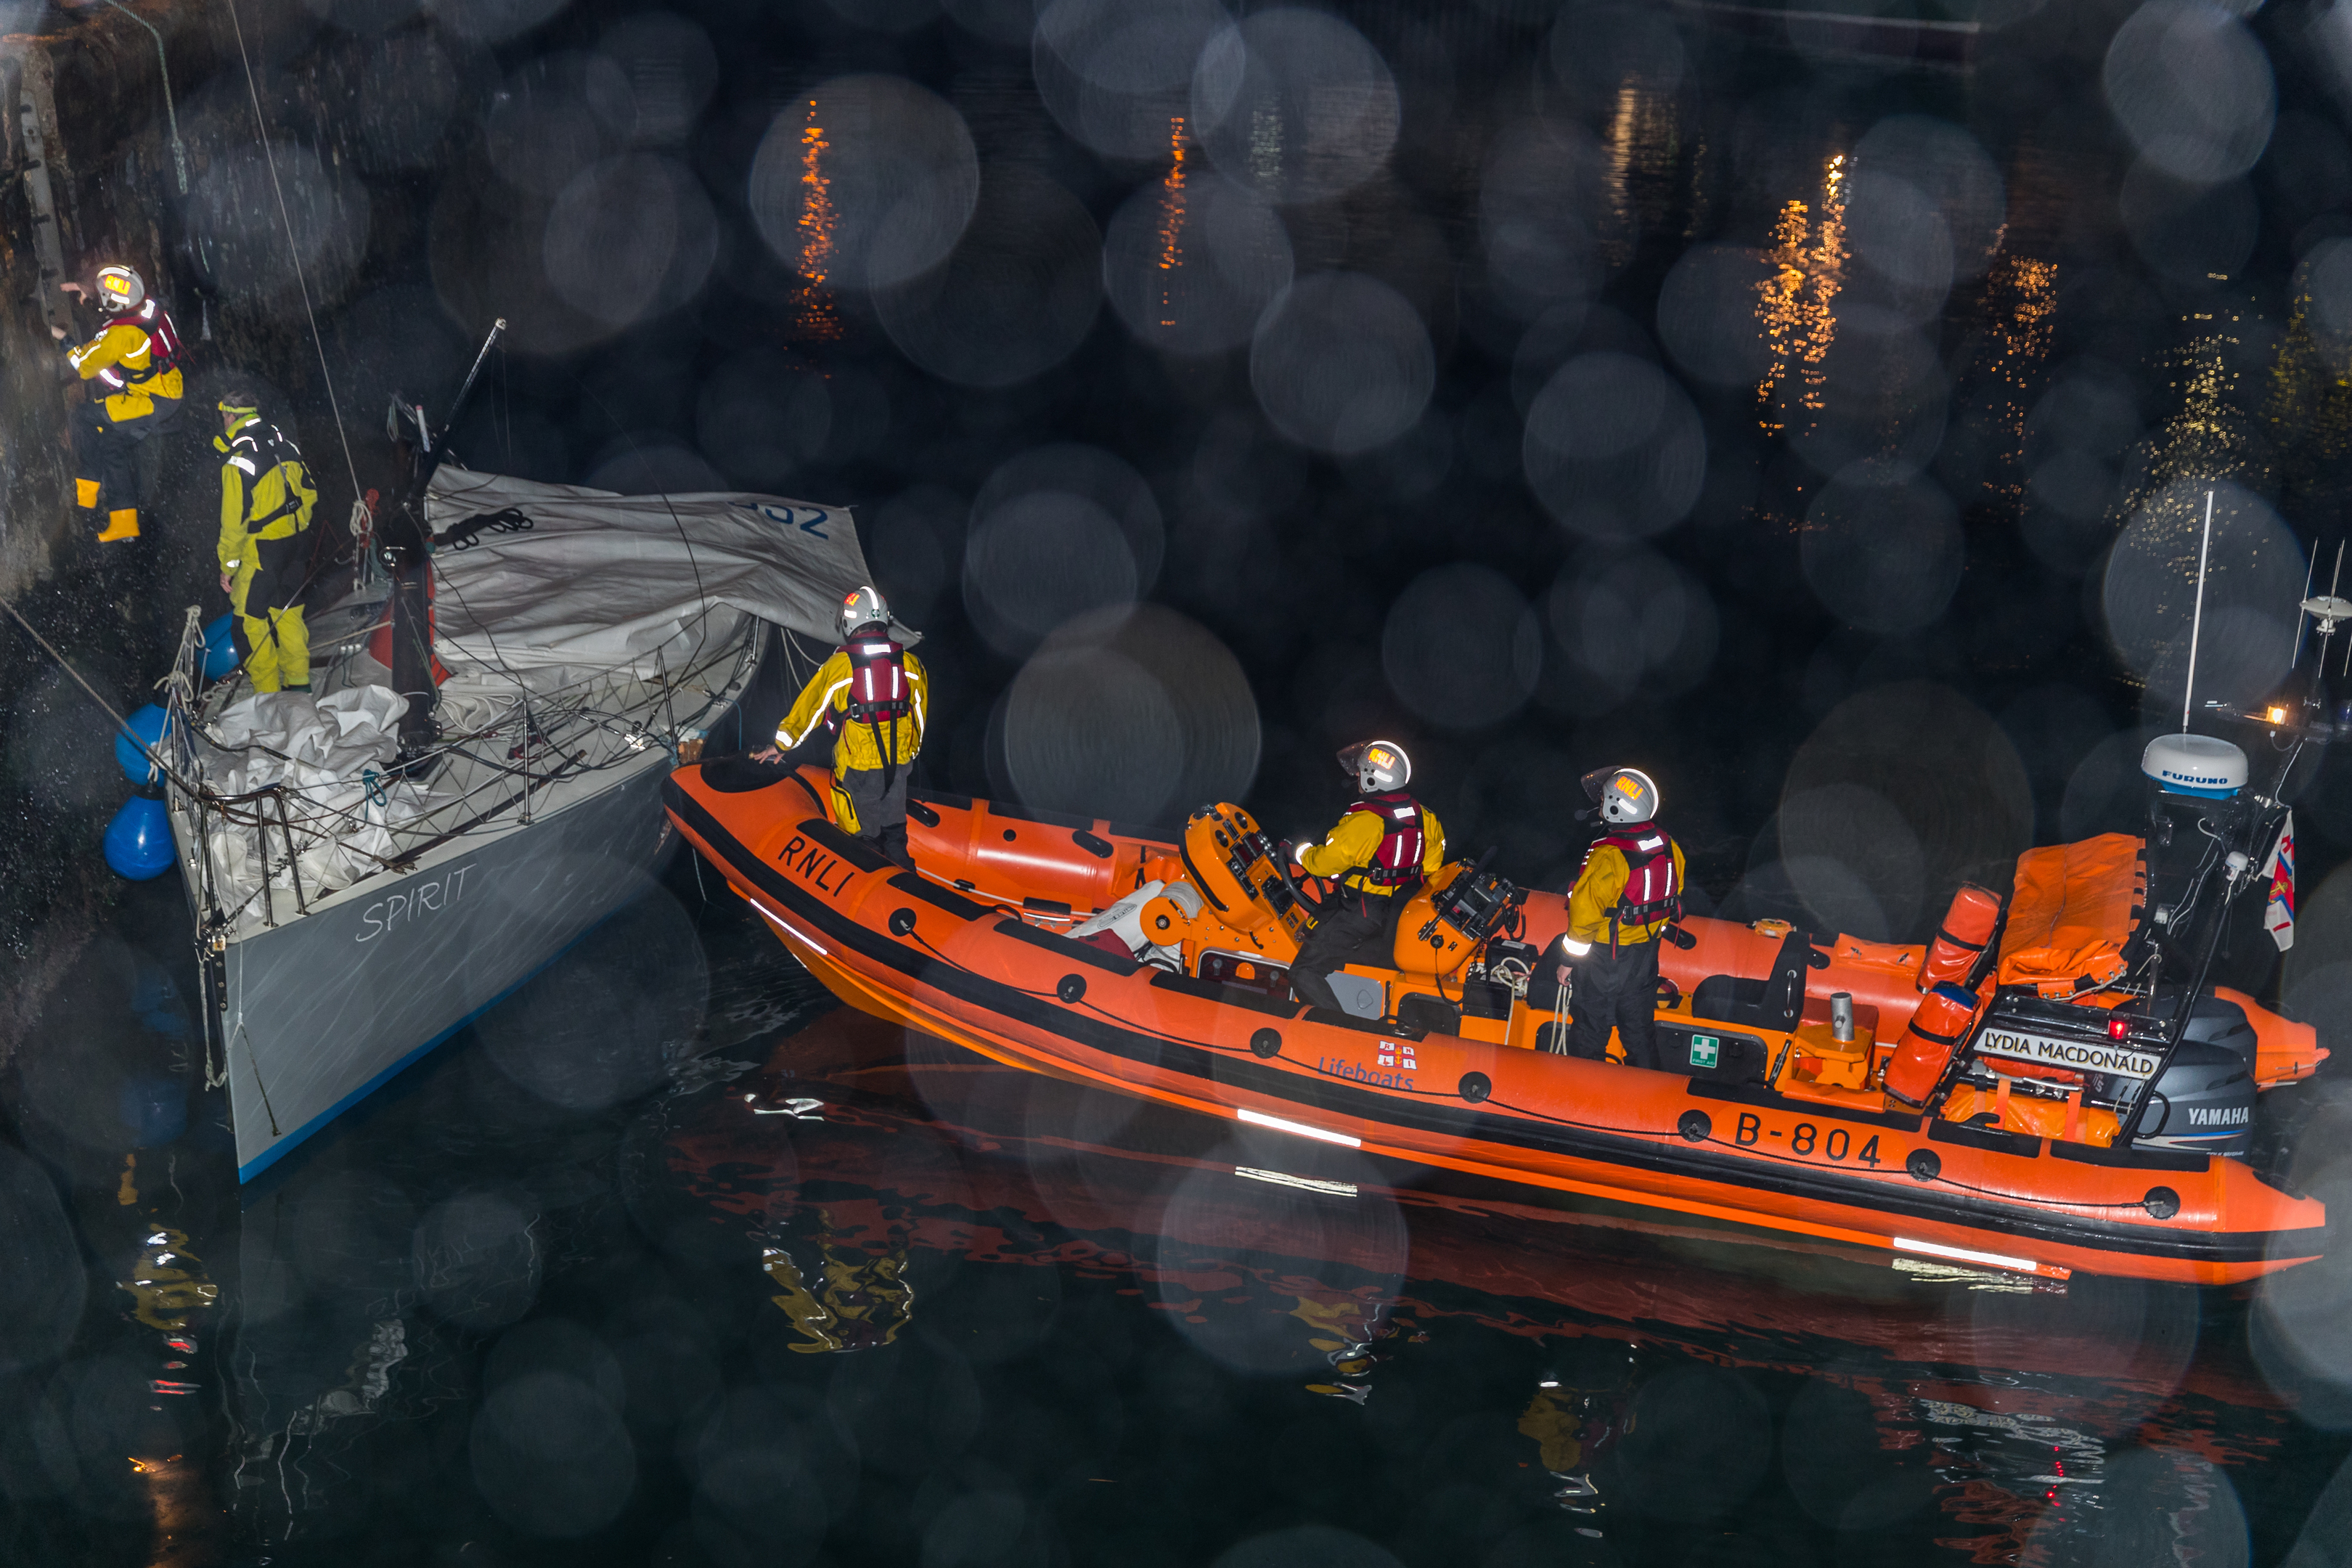 Yacht Spirit being manouvered into bertth by the Lifeboat Crew and the Sea Helper at Macduff Harbour.